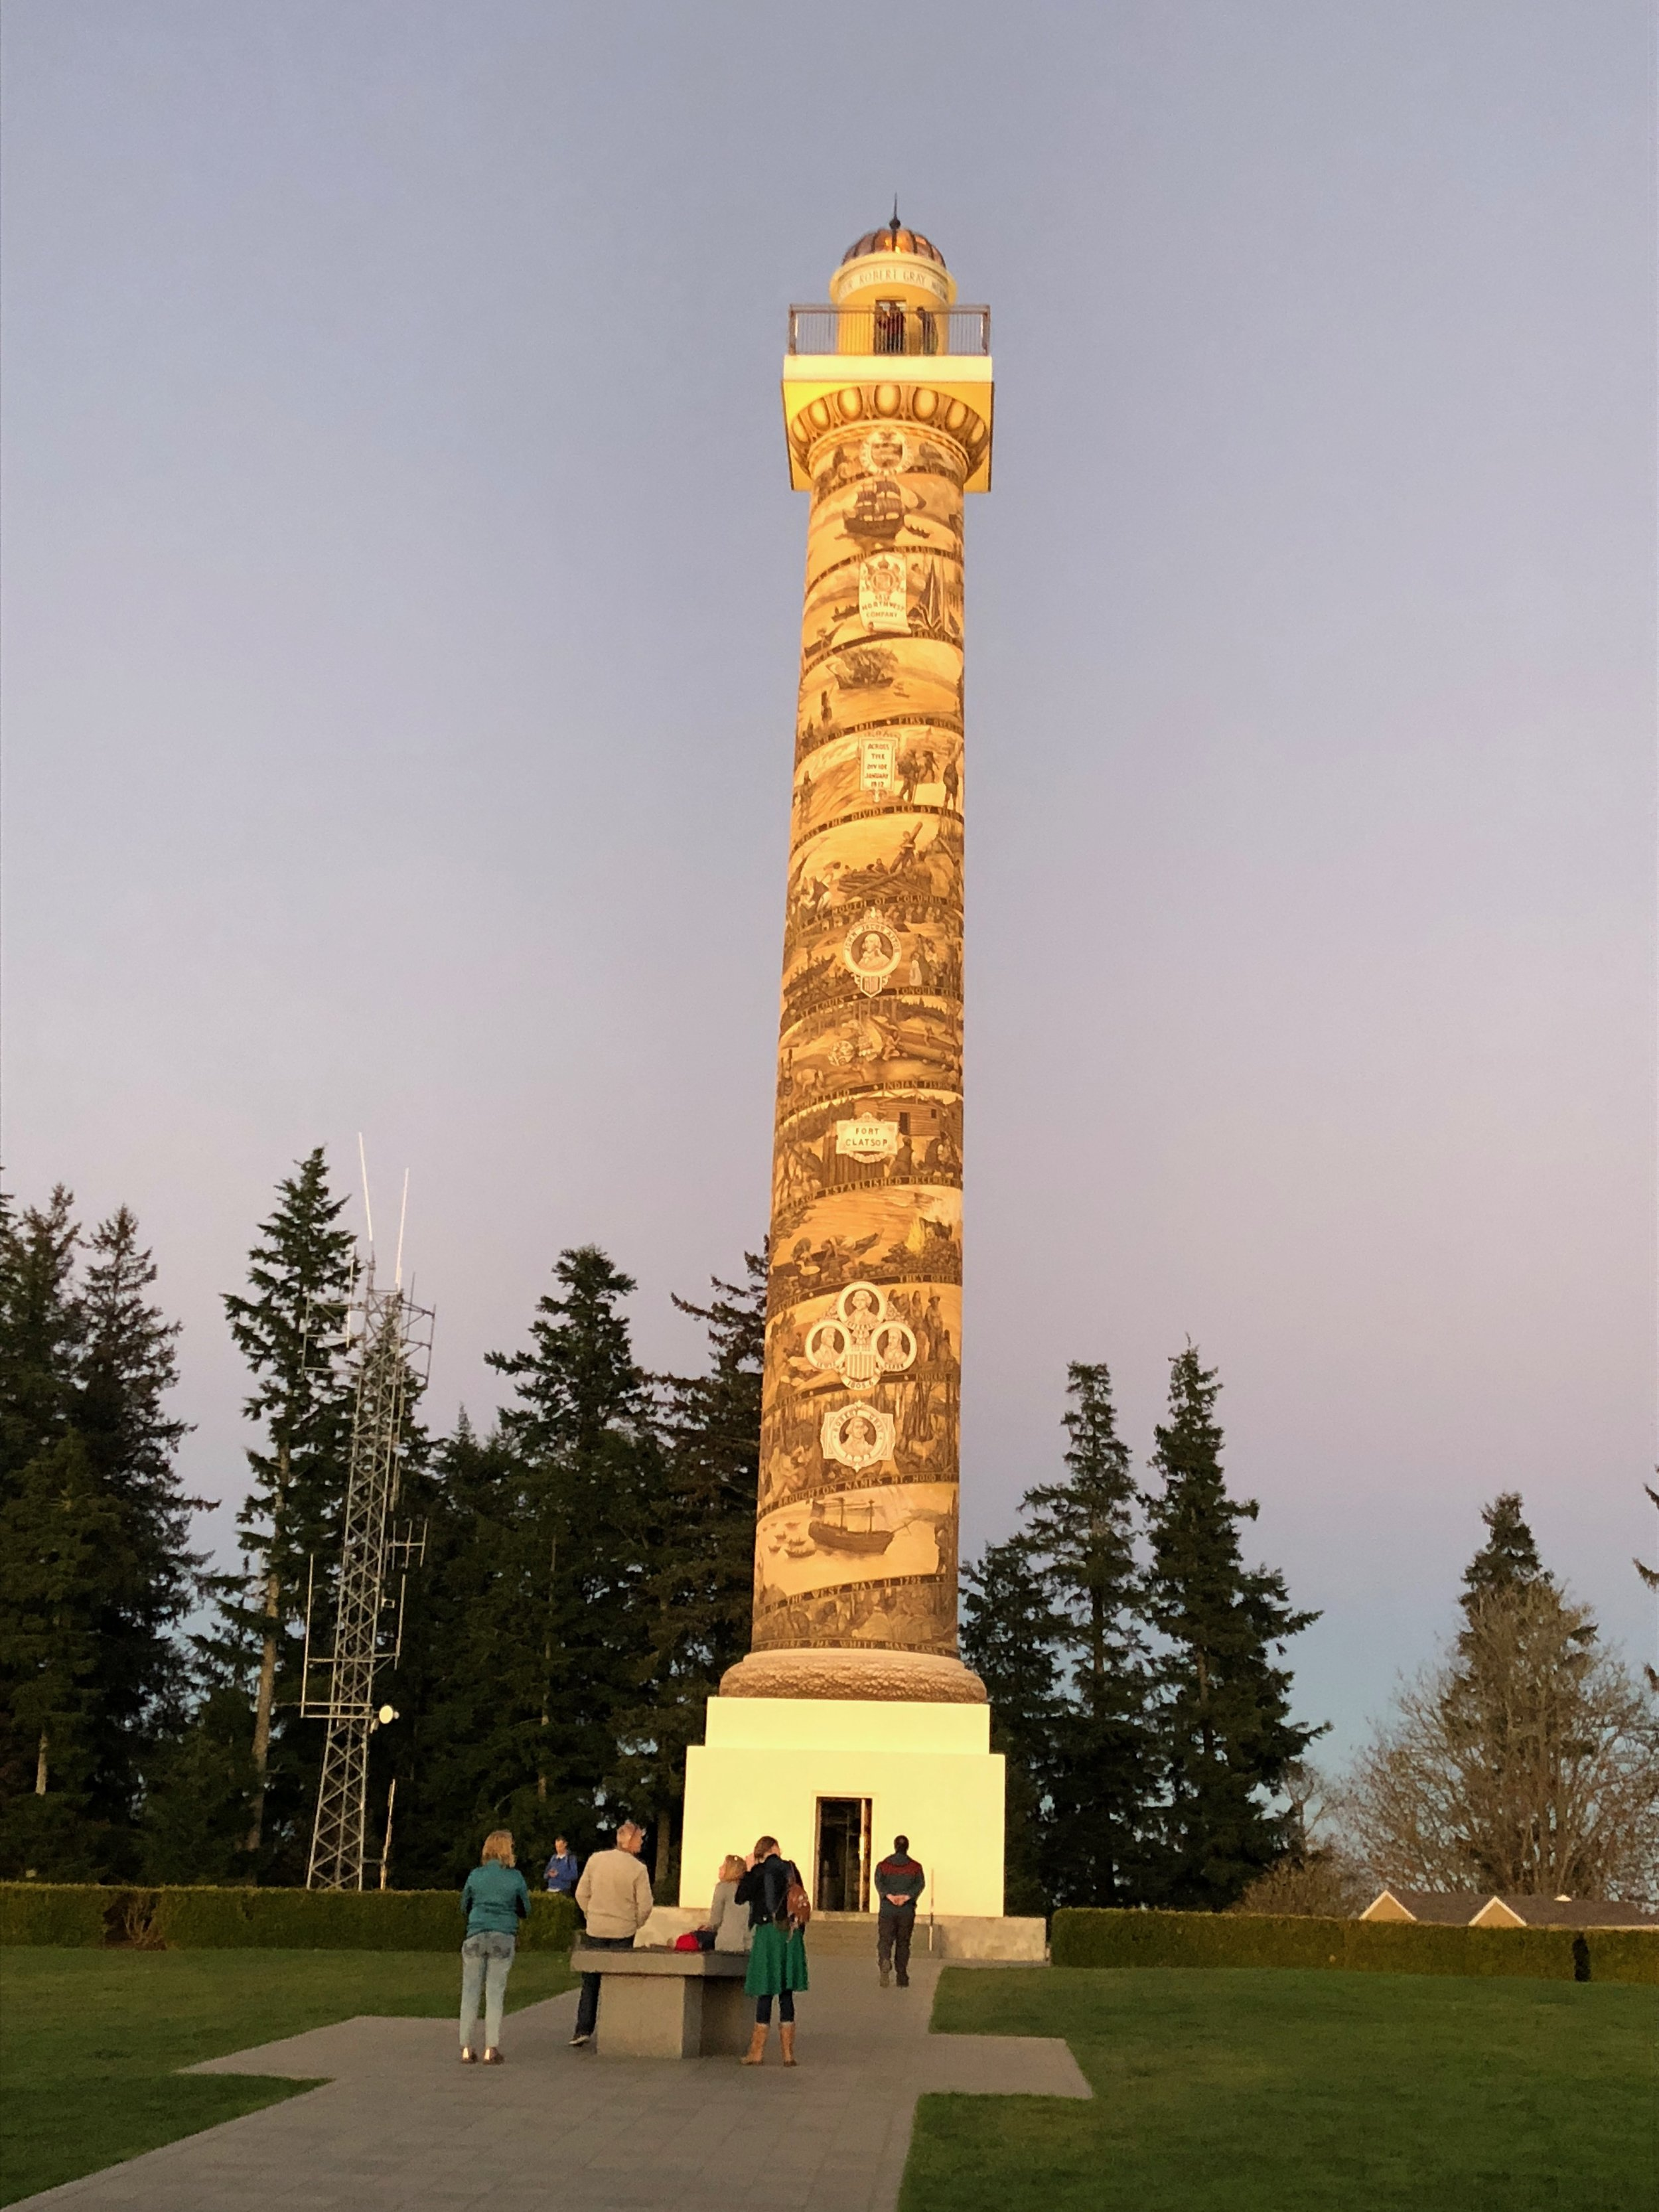 The Astoria Column lit up by the light of the sunset